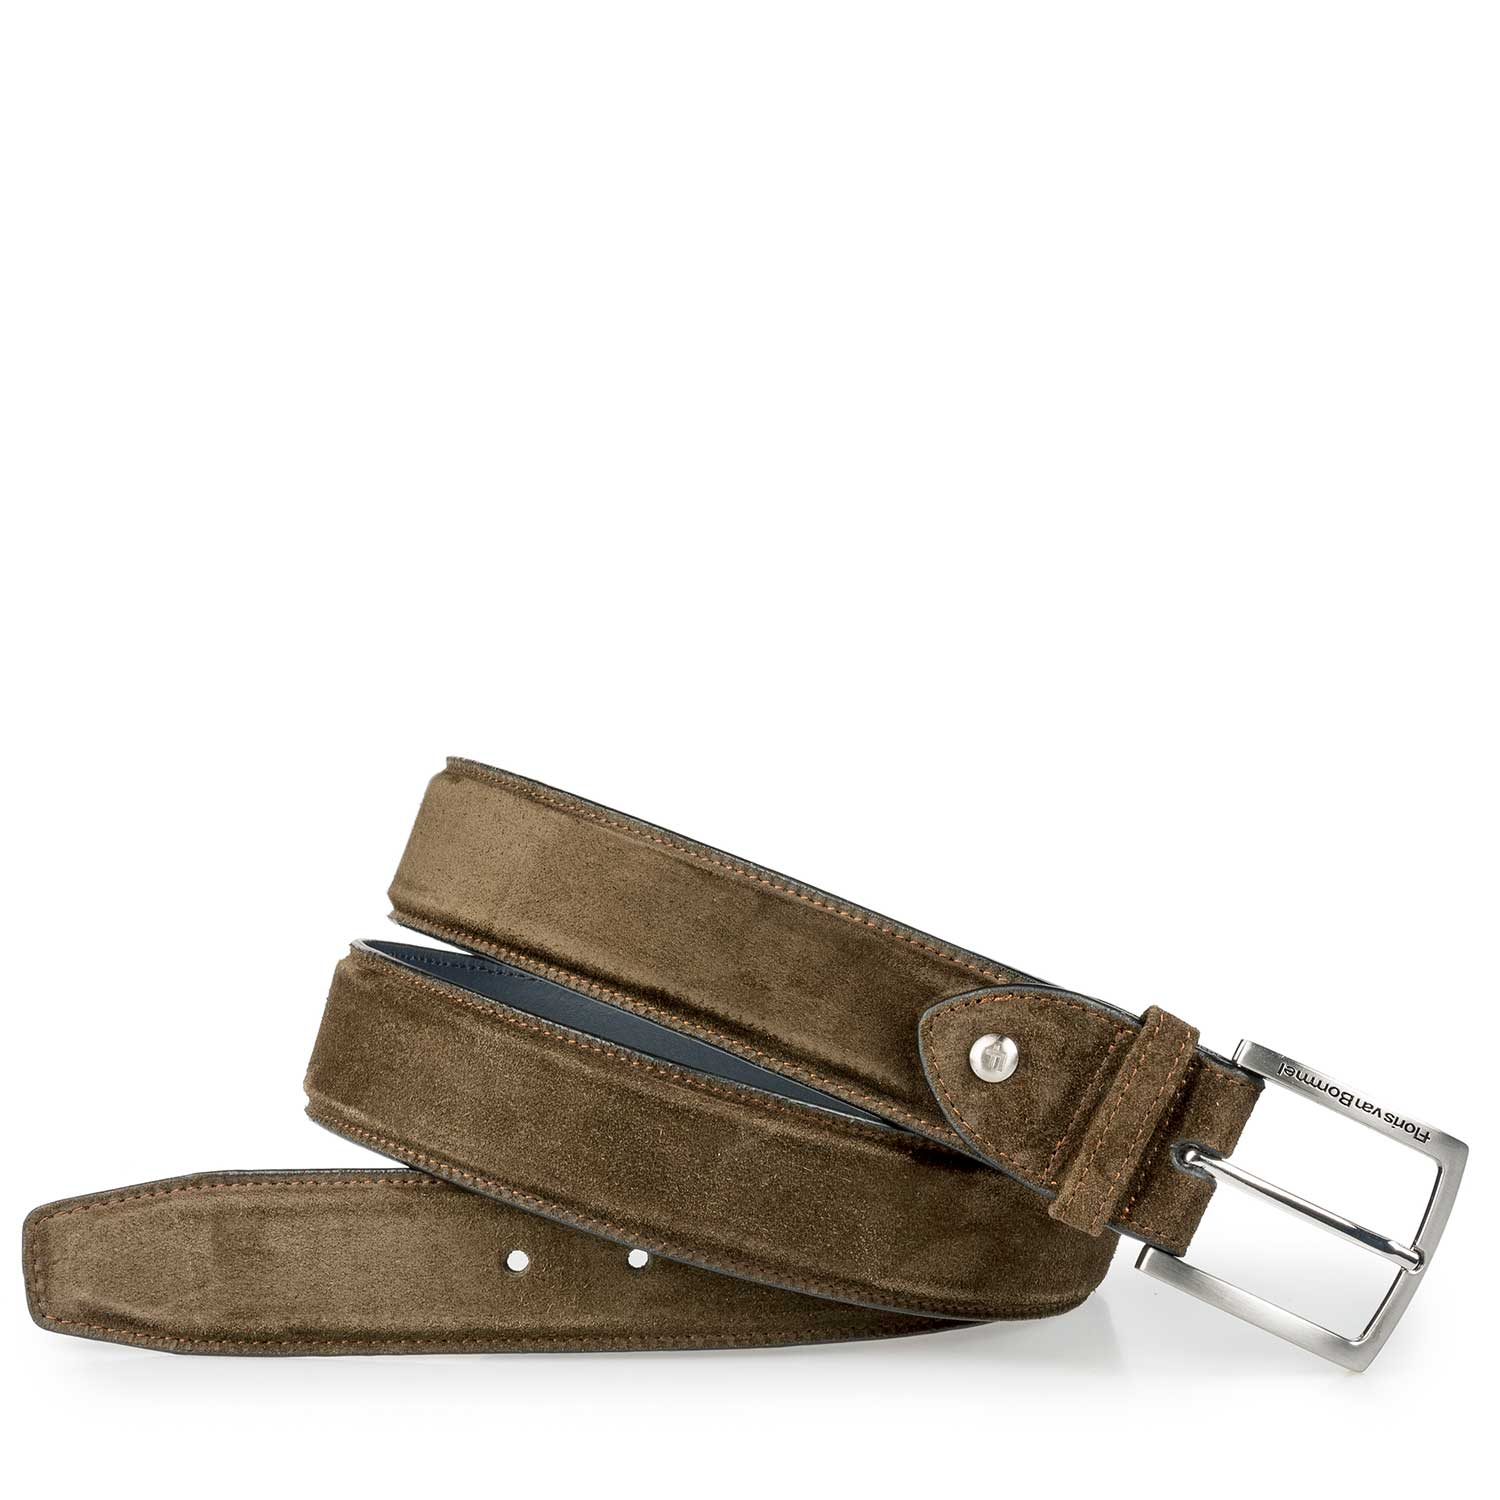 75189/09 - Olive green calf suede leather belt